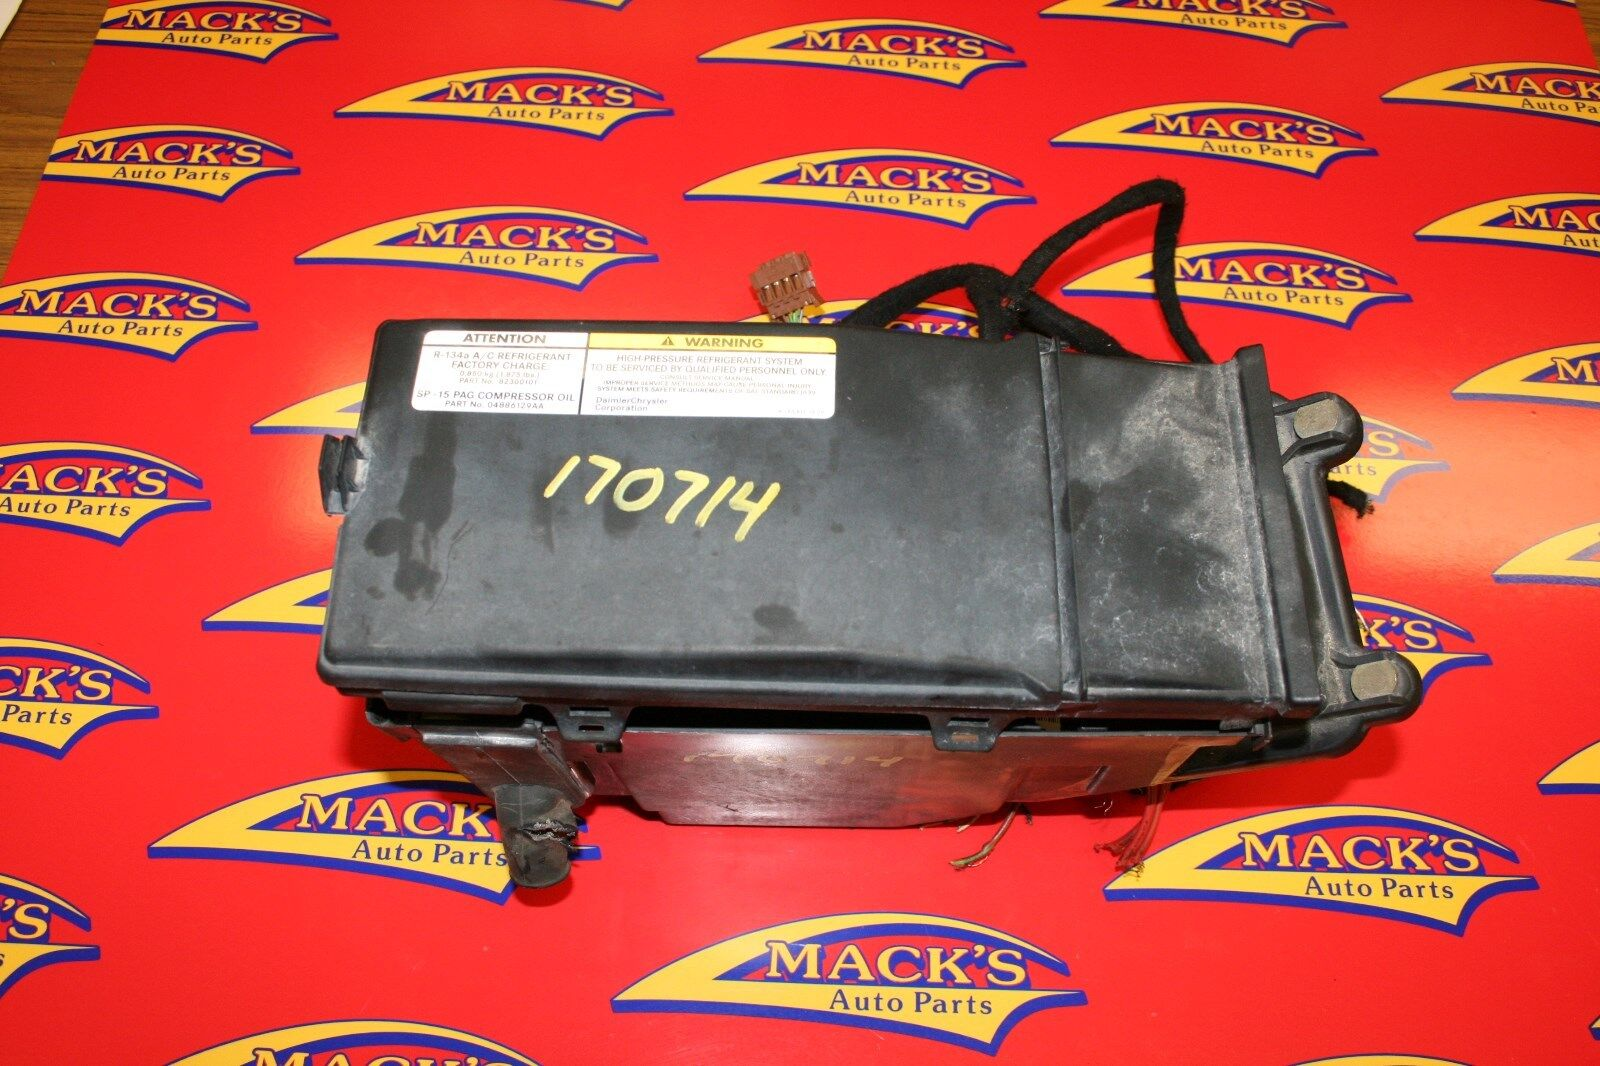 04-08 Chrysler Crossfire Fuse Relay Box Fusebox Assembly 1 of 4Only 1  available See More